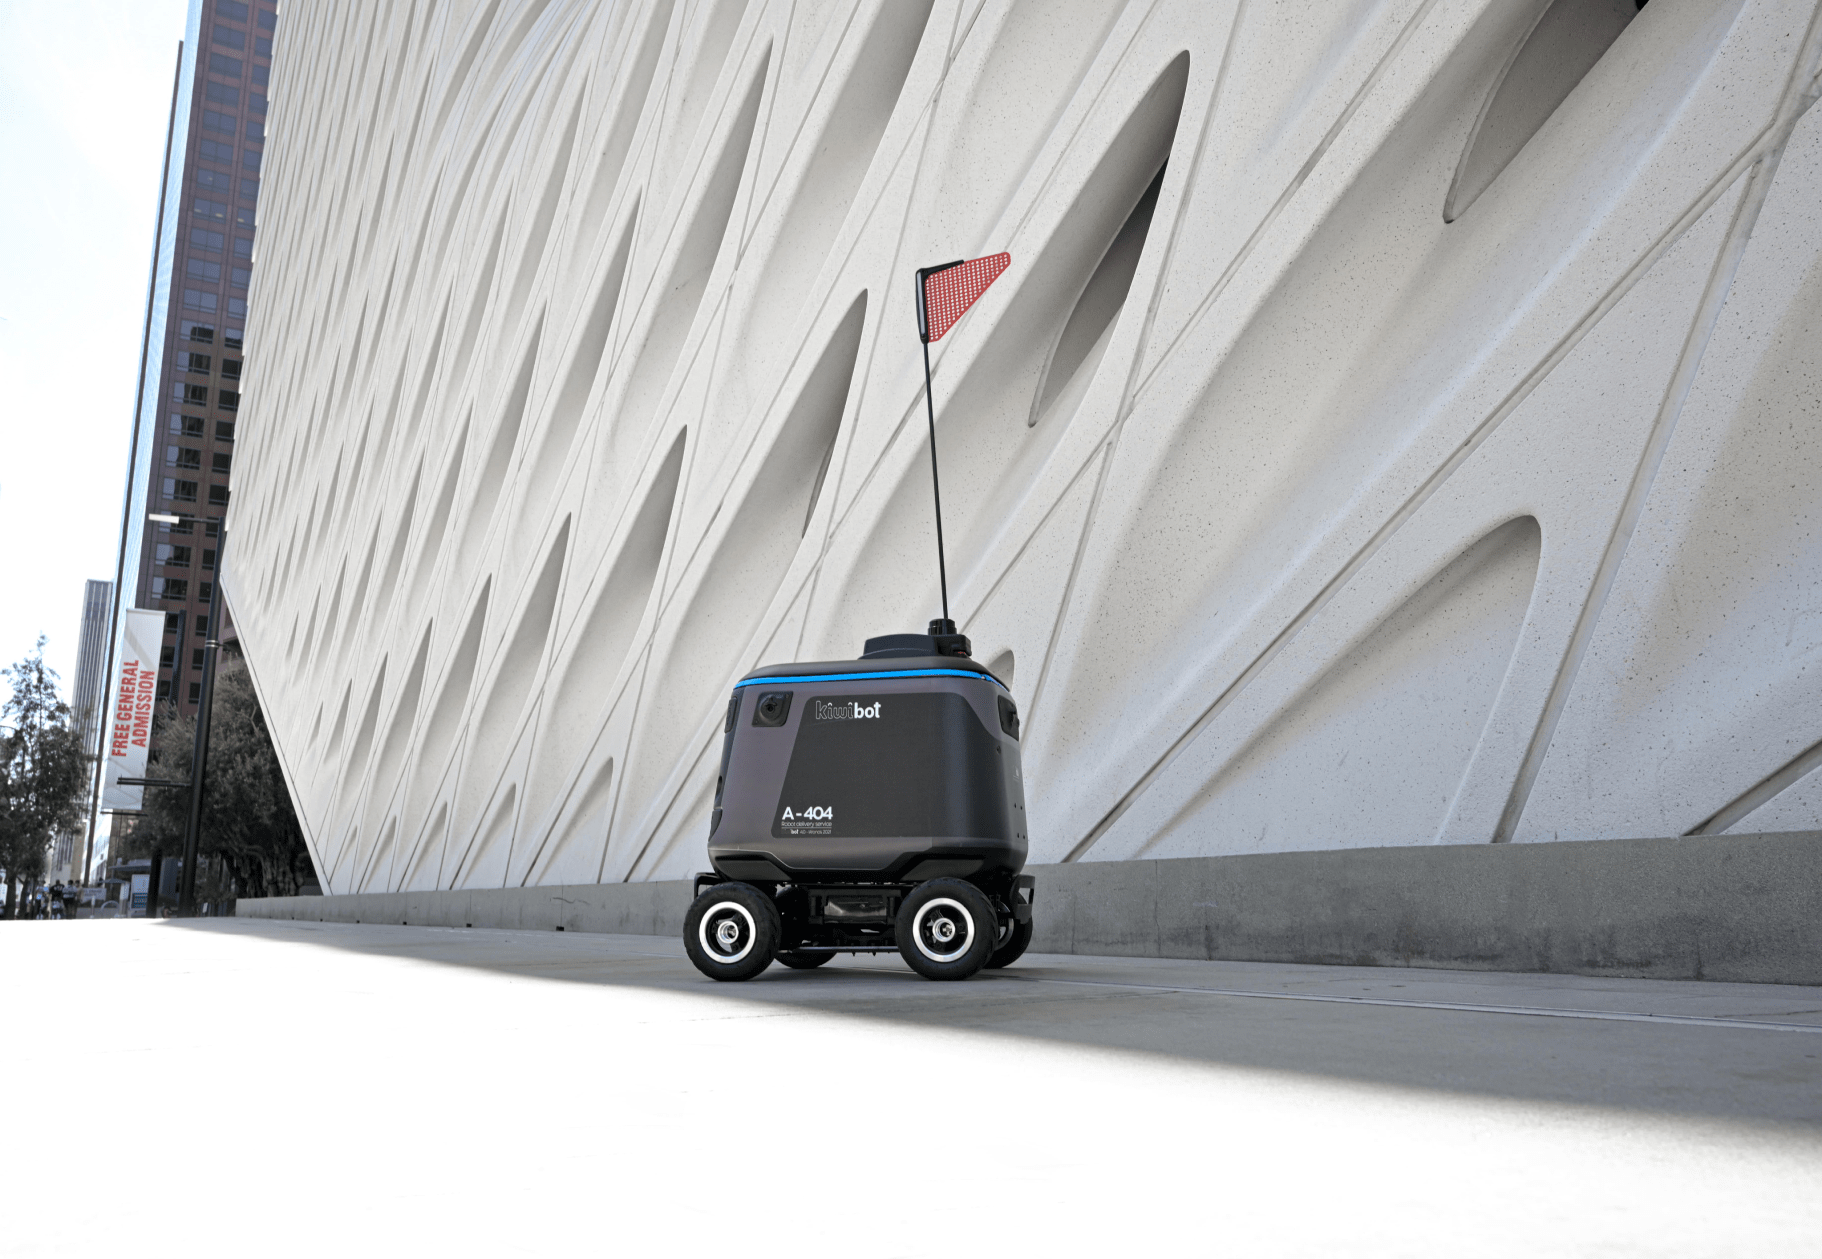 Kiwibot on the streets of Los Angeles